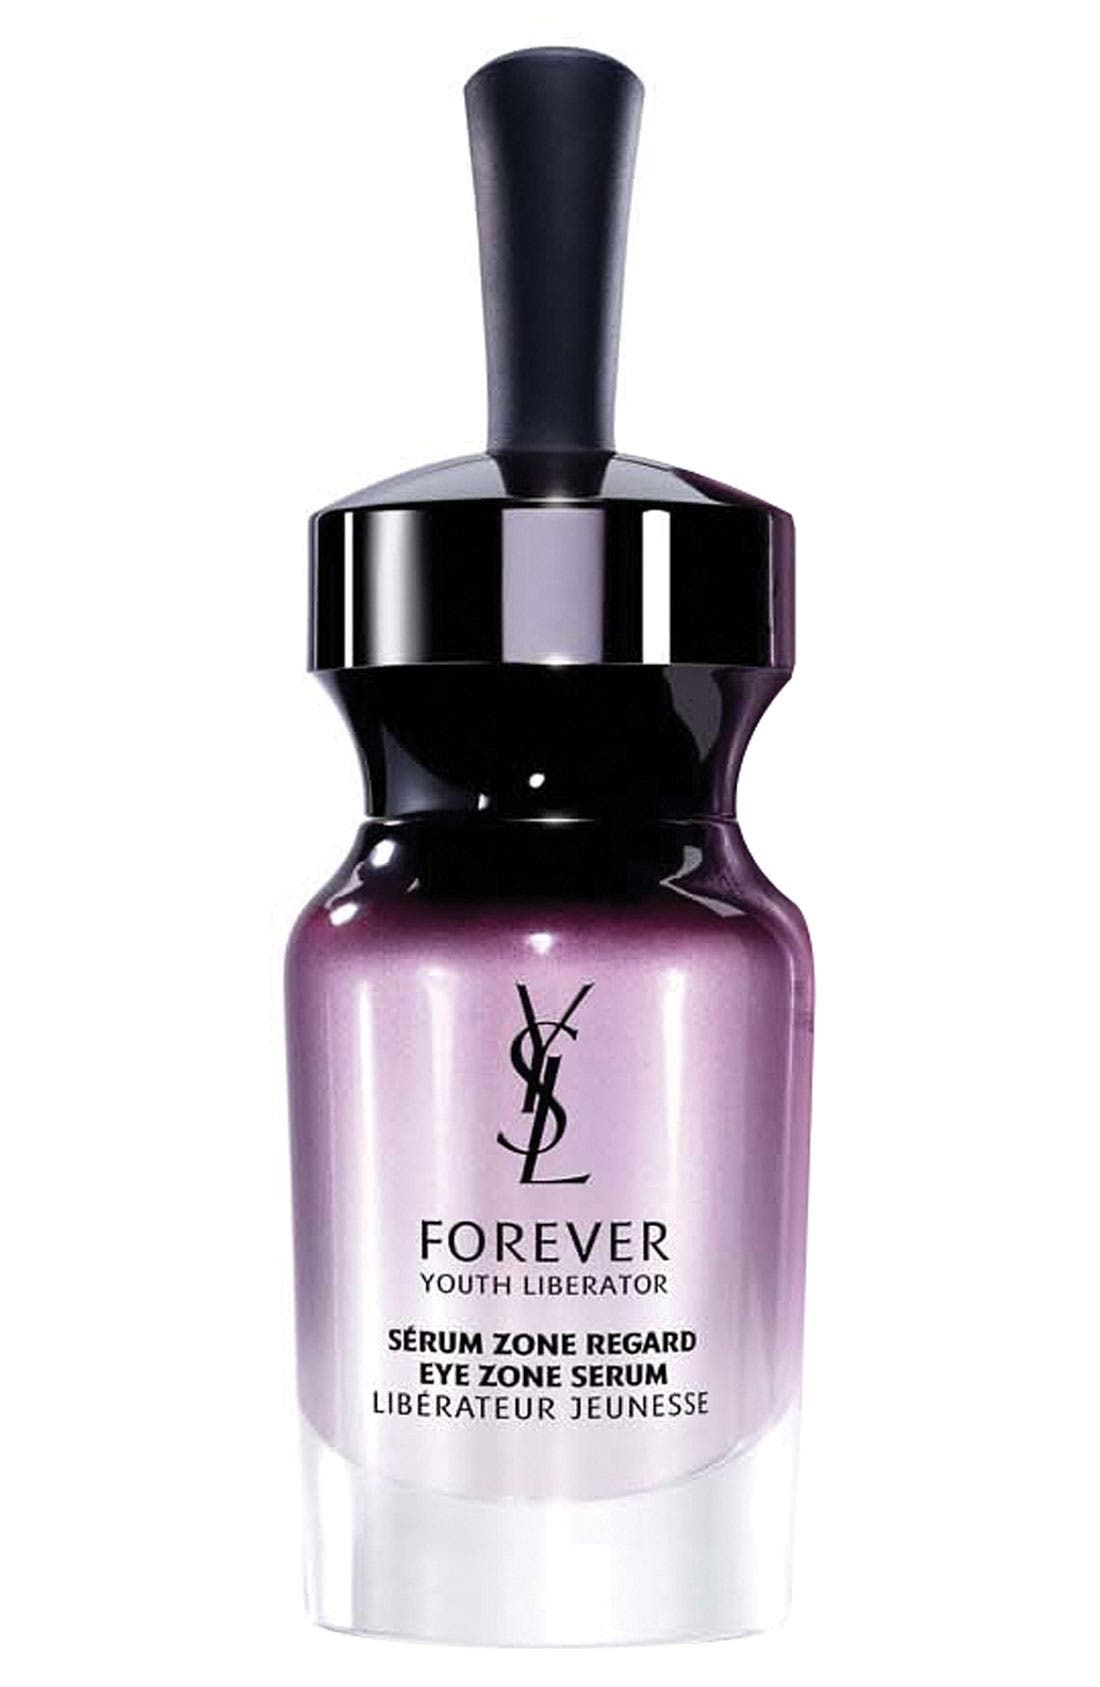 Yves Saint Laurent 'Forever Youth Liberator' Eye Zone Serum